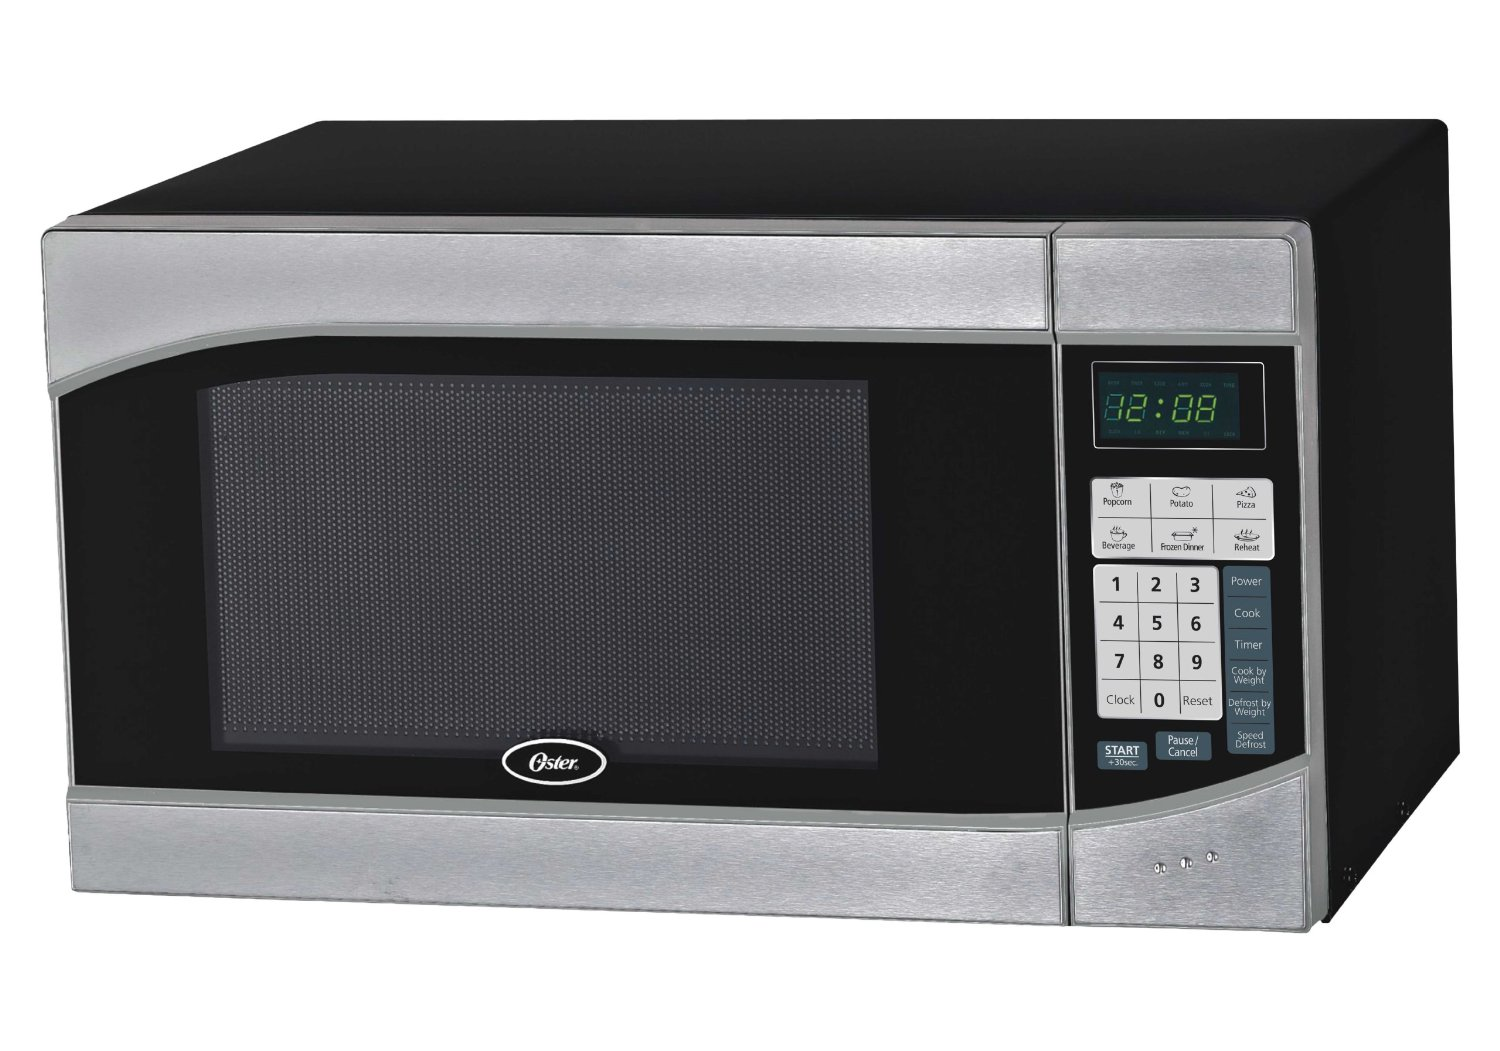 Countertop Microwave What To Look For : 10 Best Countertop Microwave Ovens - Top Countertop Oven Reviews